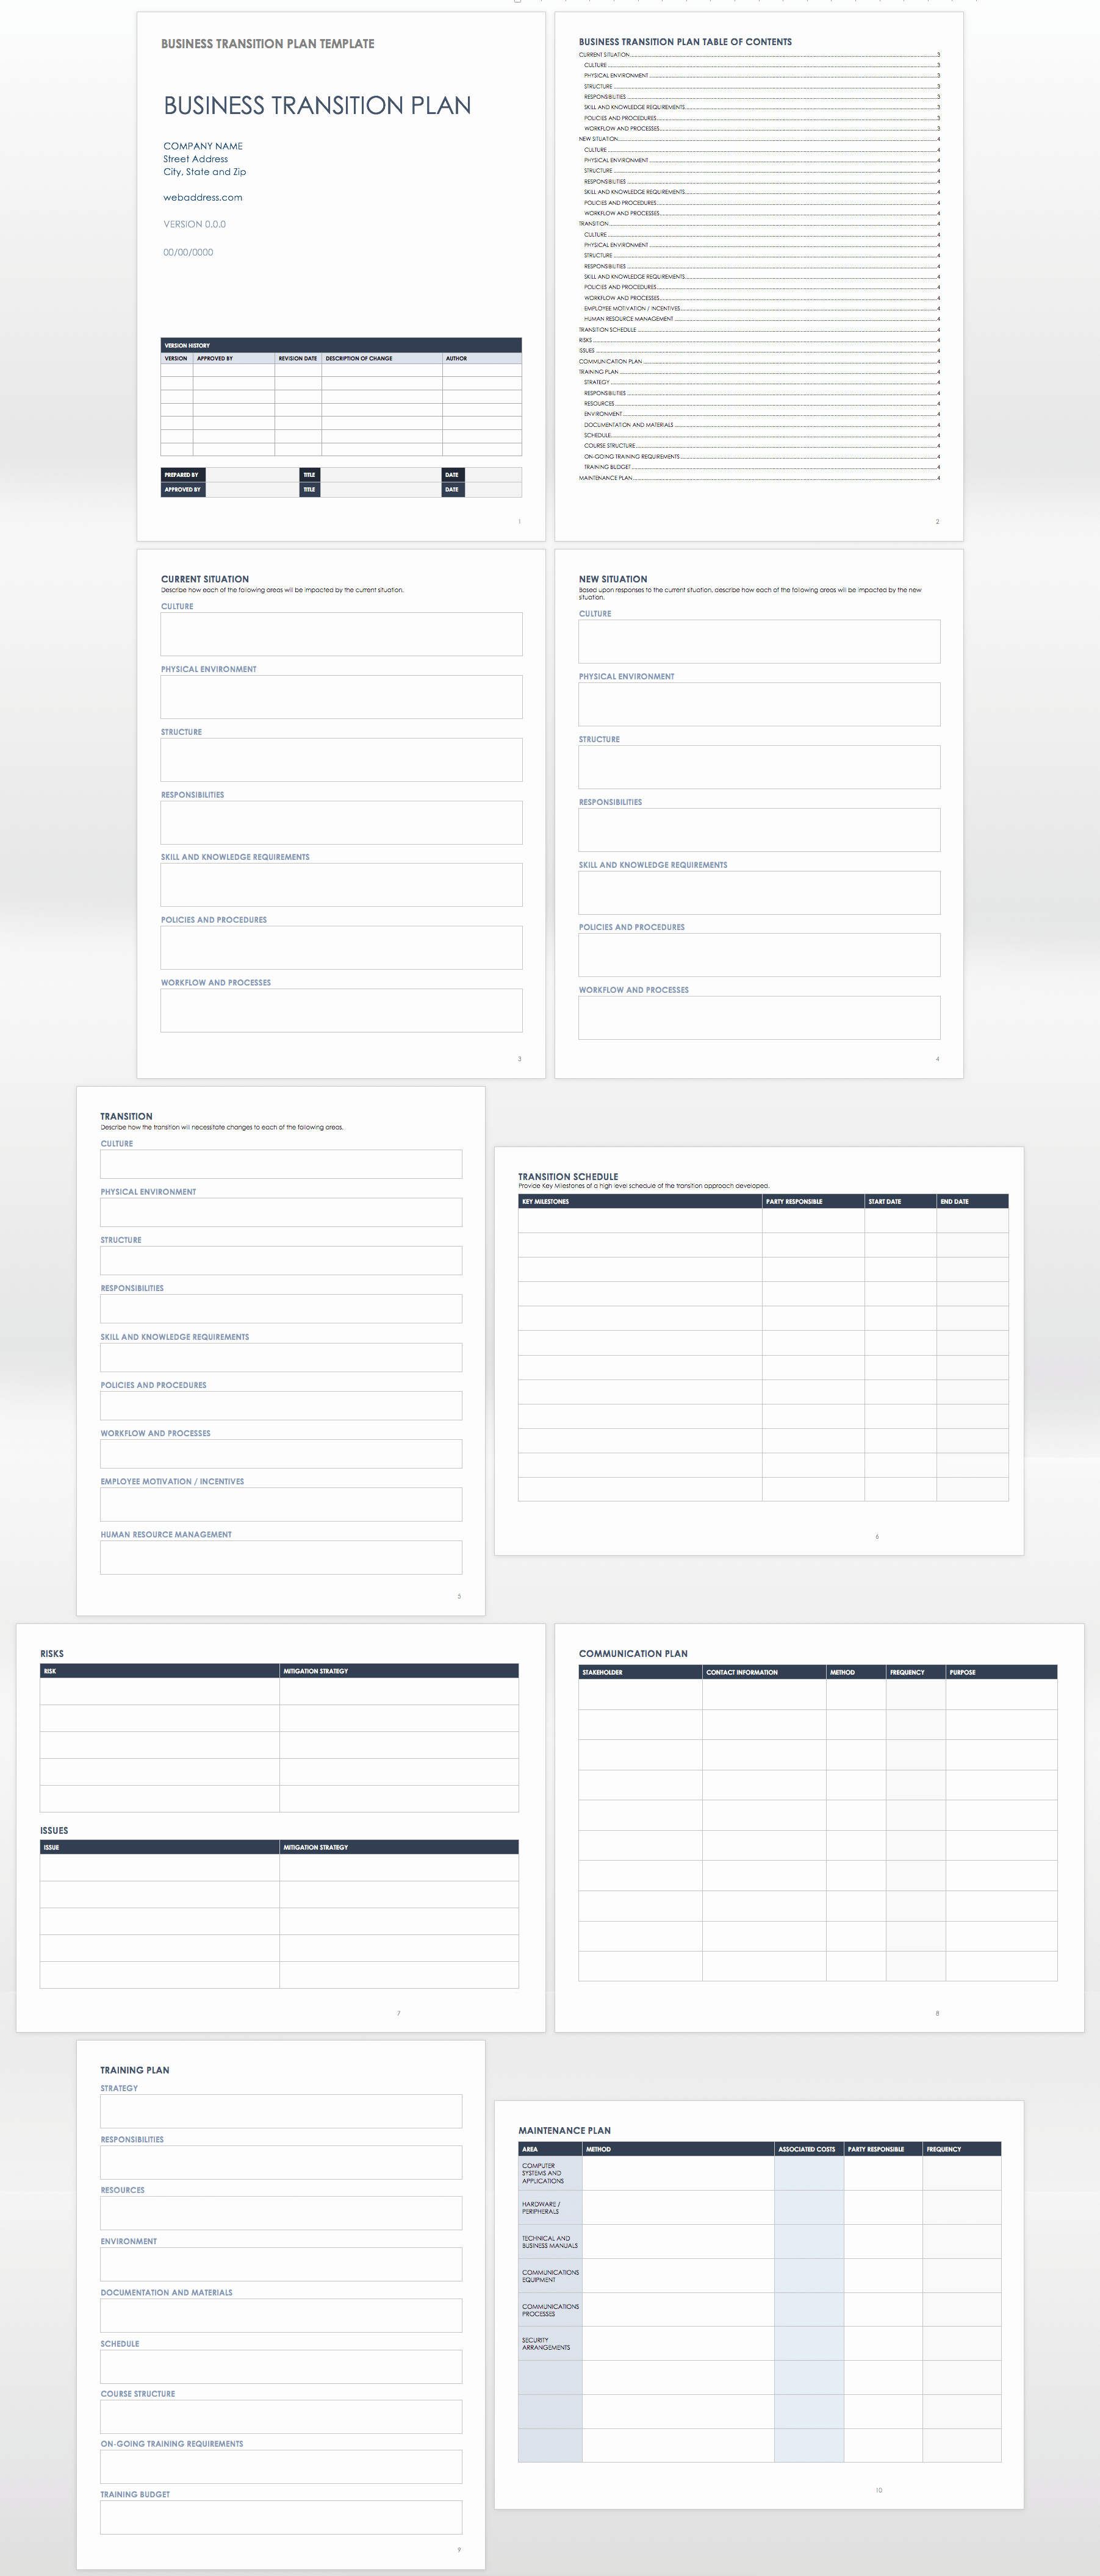 Business Transition Plan Template Beautiful Free Business Transition Plan Templates